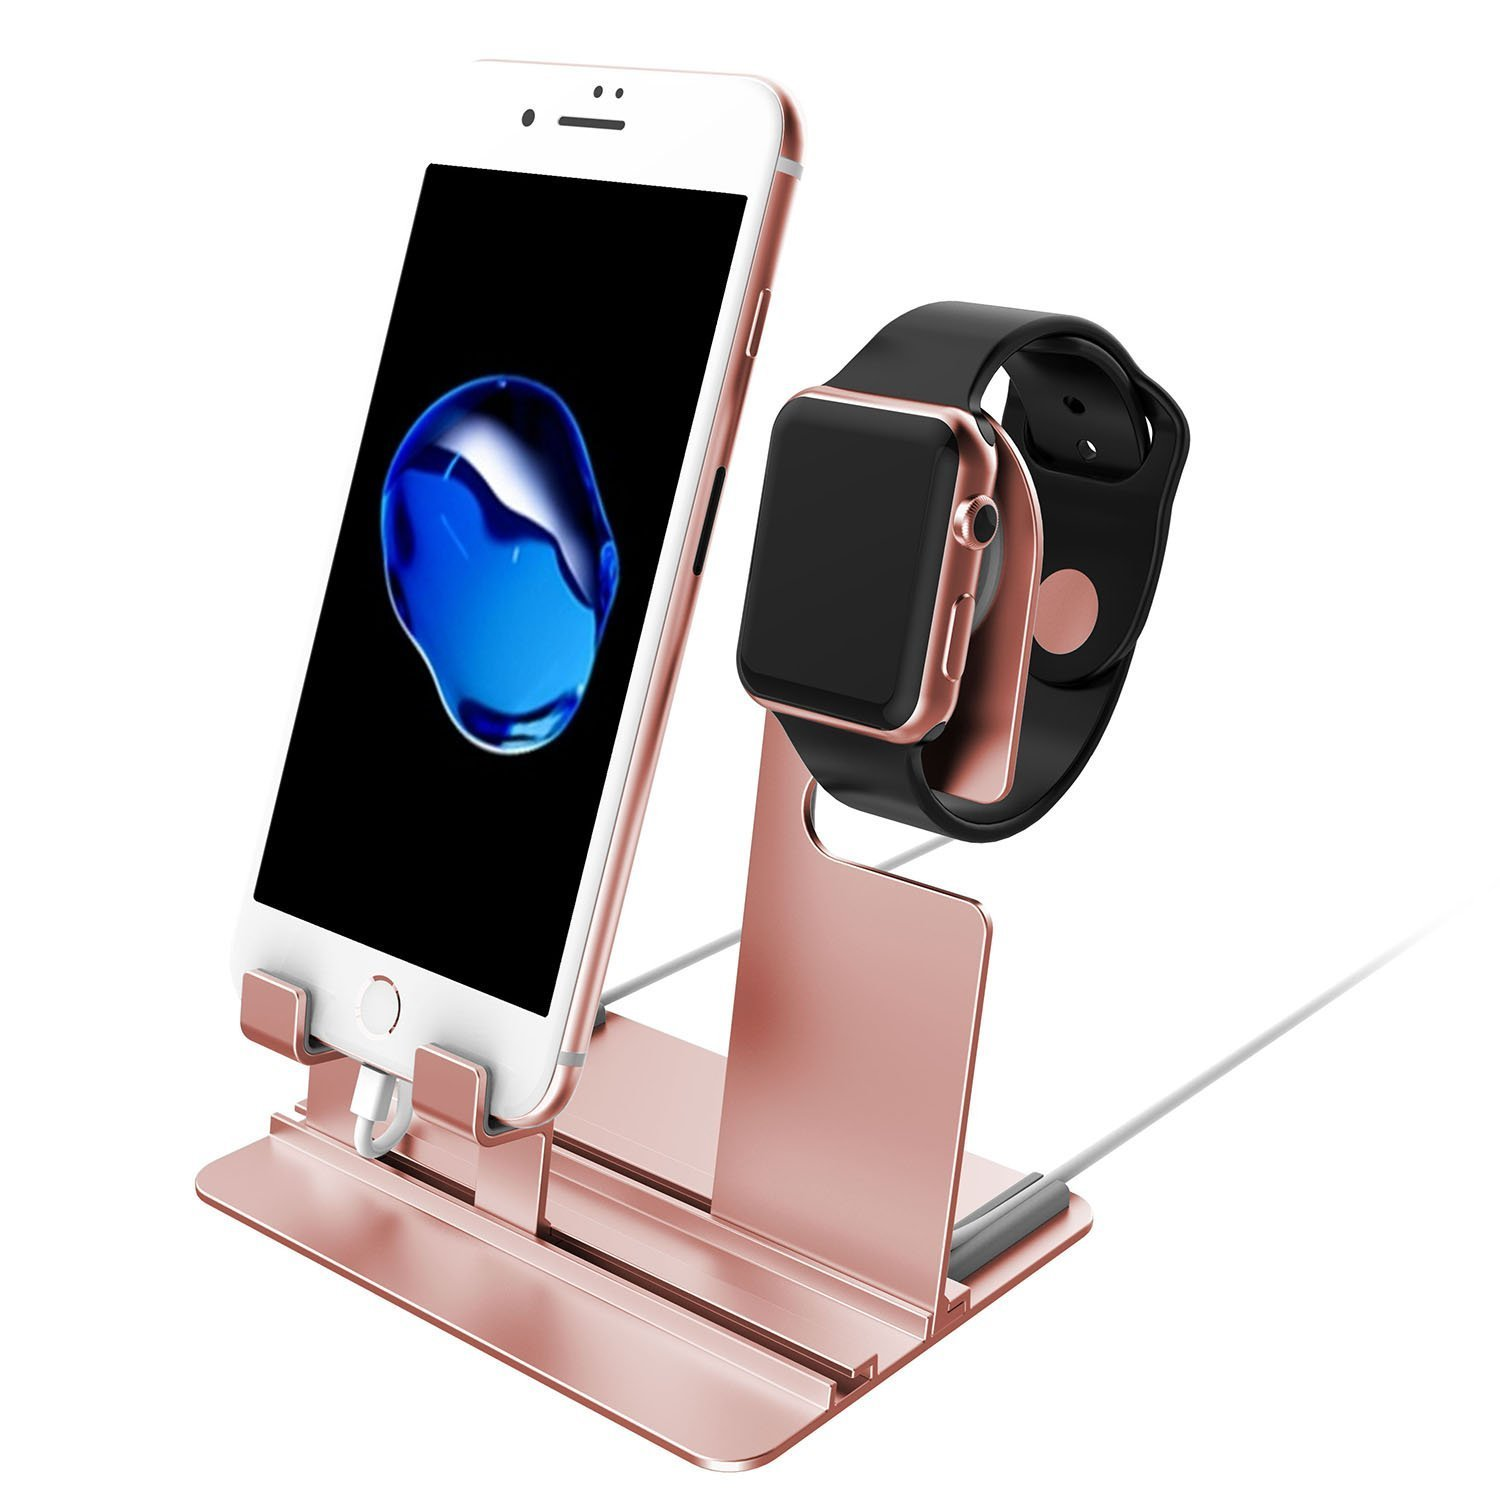 Apple Watch Stand, Apple Watch Charging Holder, Qiandy Smart Watch Charging Docks Station Charger Stand for Apple Watch Series 3/2/1/iPhone X/8/8Plus/7/7 Plus/6S/6S Plus/AirPods/iPad (Pink) by Qiandy (Image #2)